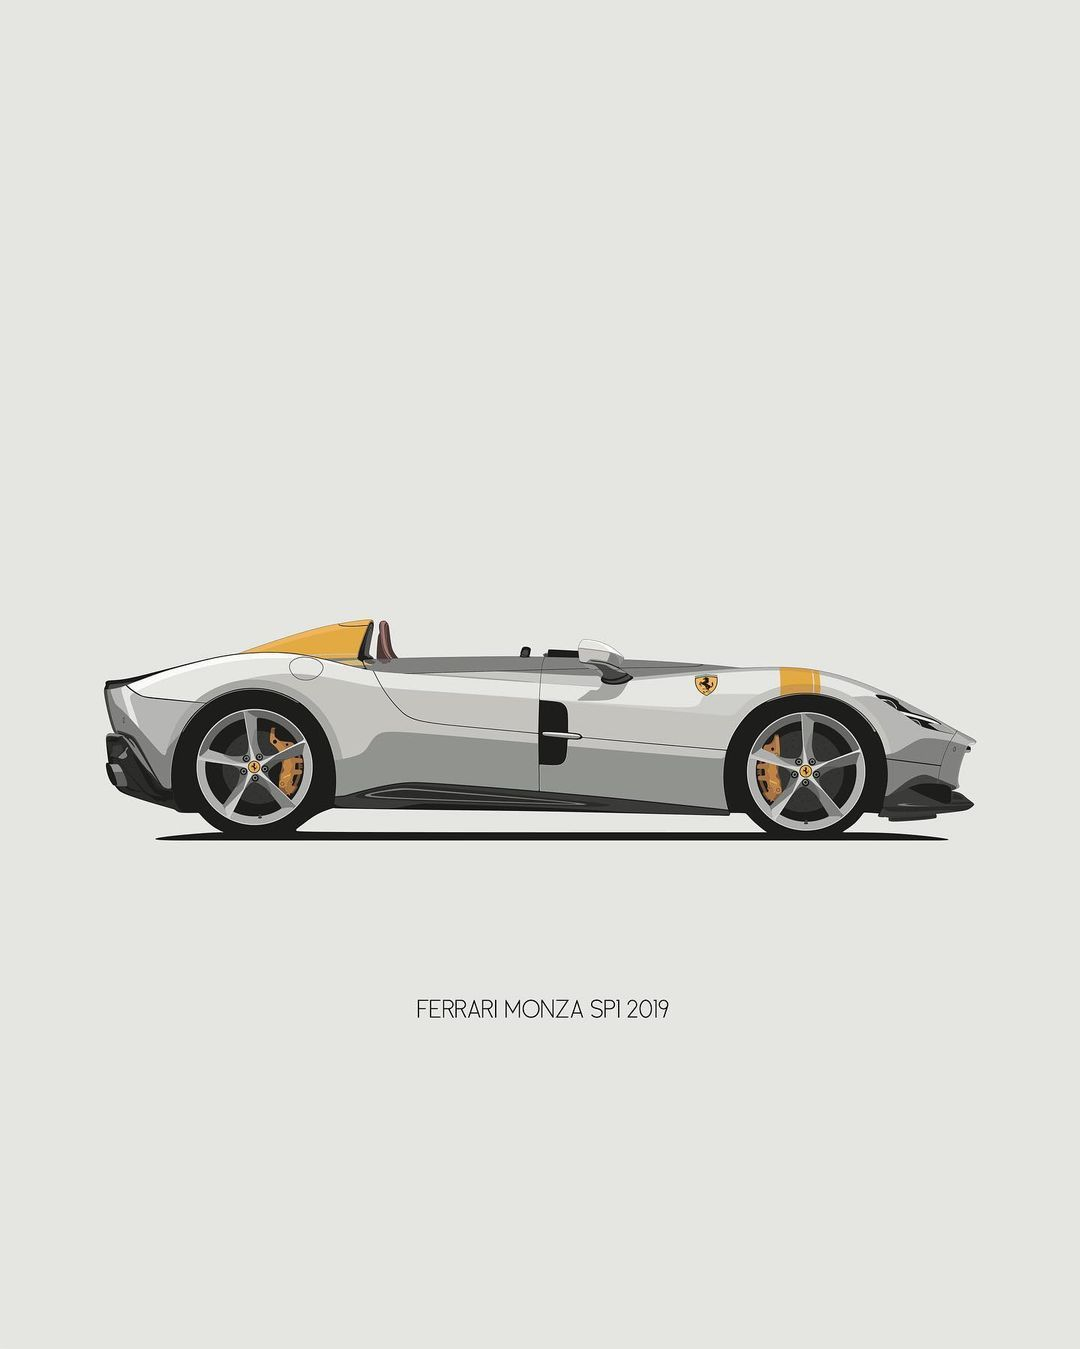 "remove-before.com on Instagram: ""Ferrari Monza SP1 print available 🐎 . . . #removebefore #ferrari #monza #ferrarimonzasp1 #cardesign #autoillustration #carillustration…"""